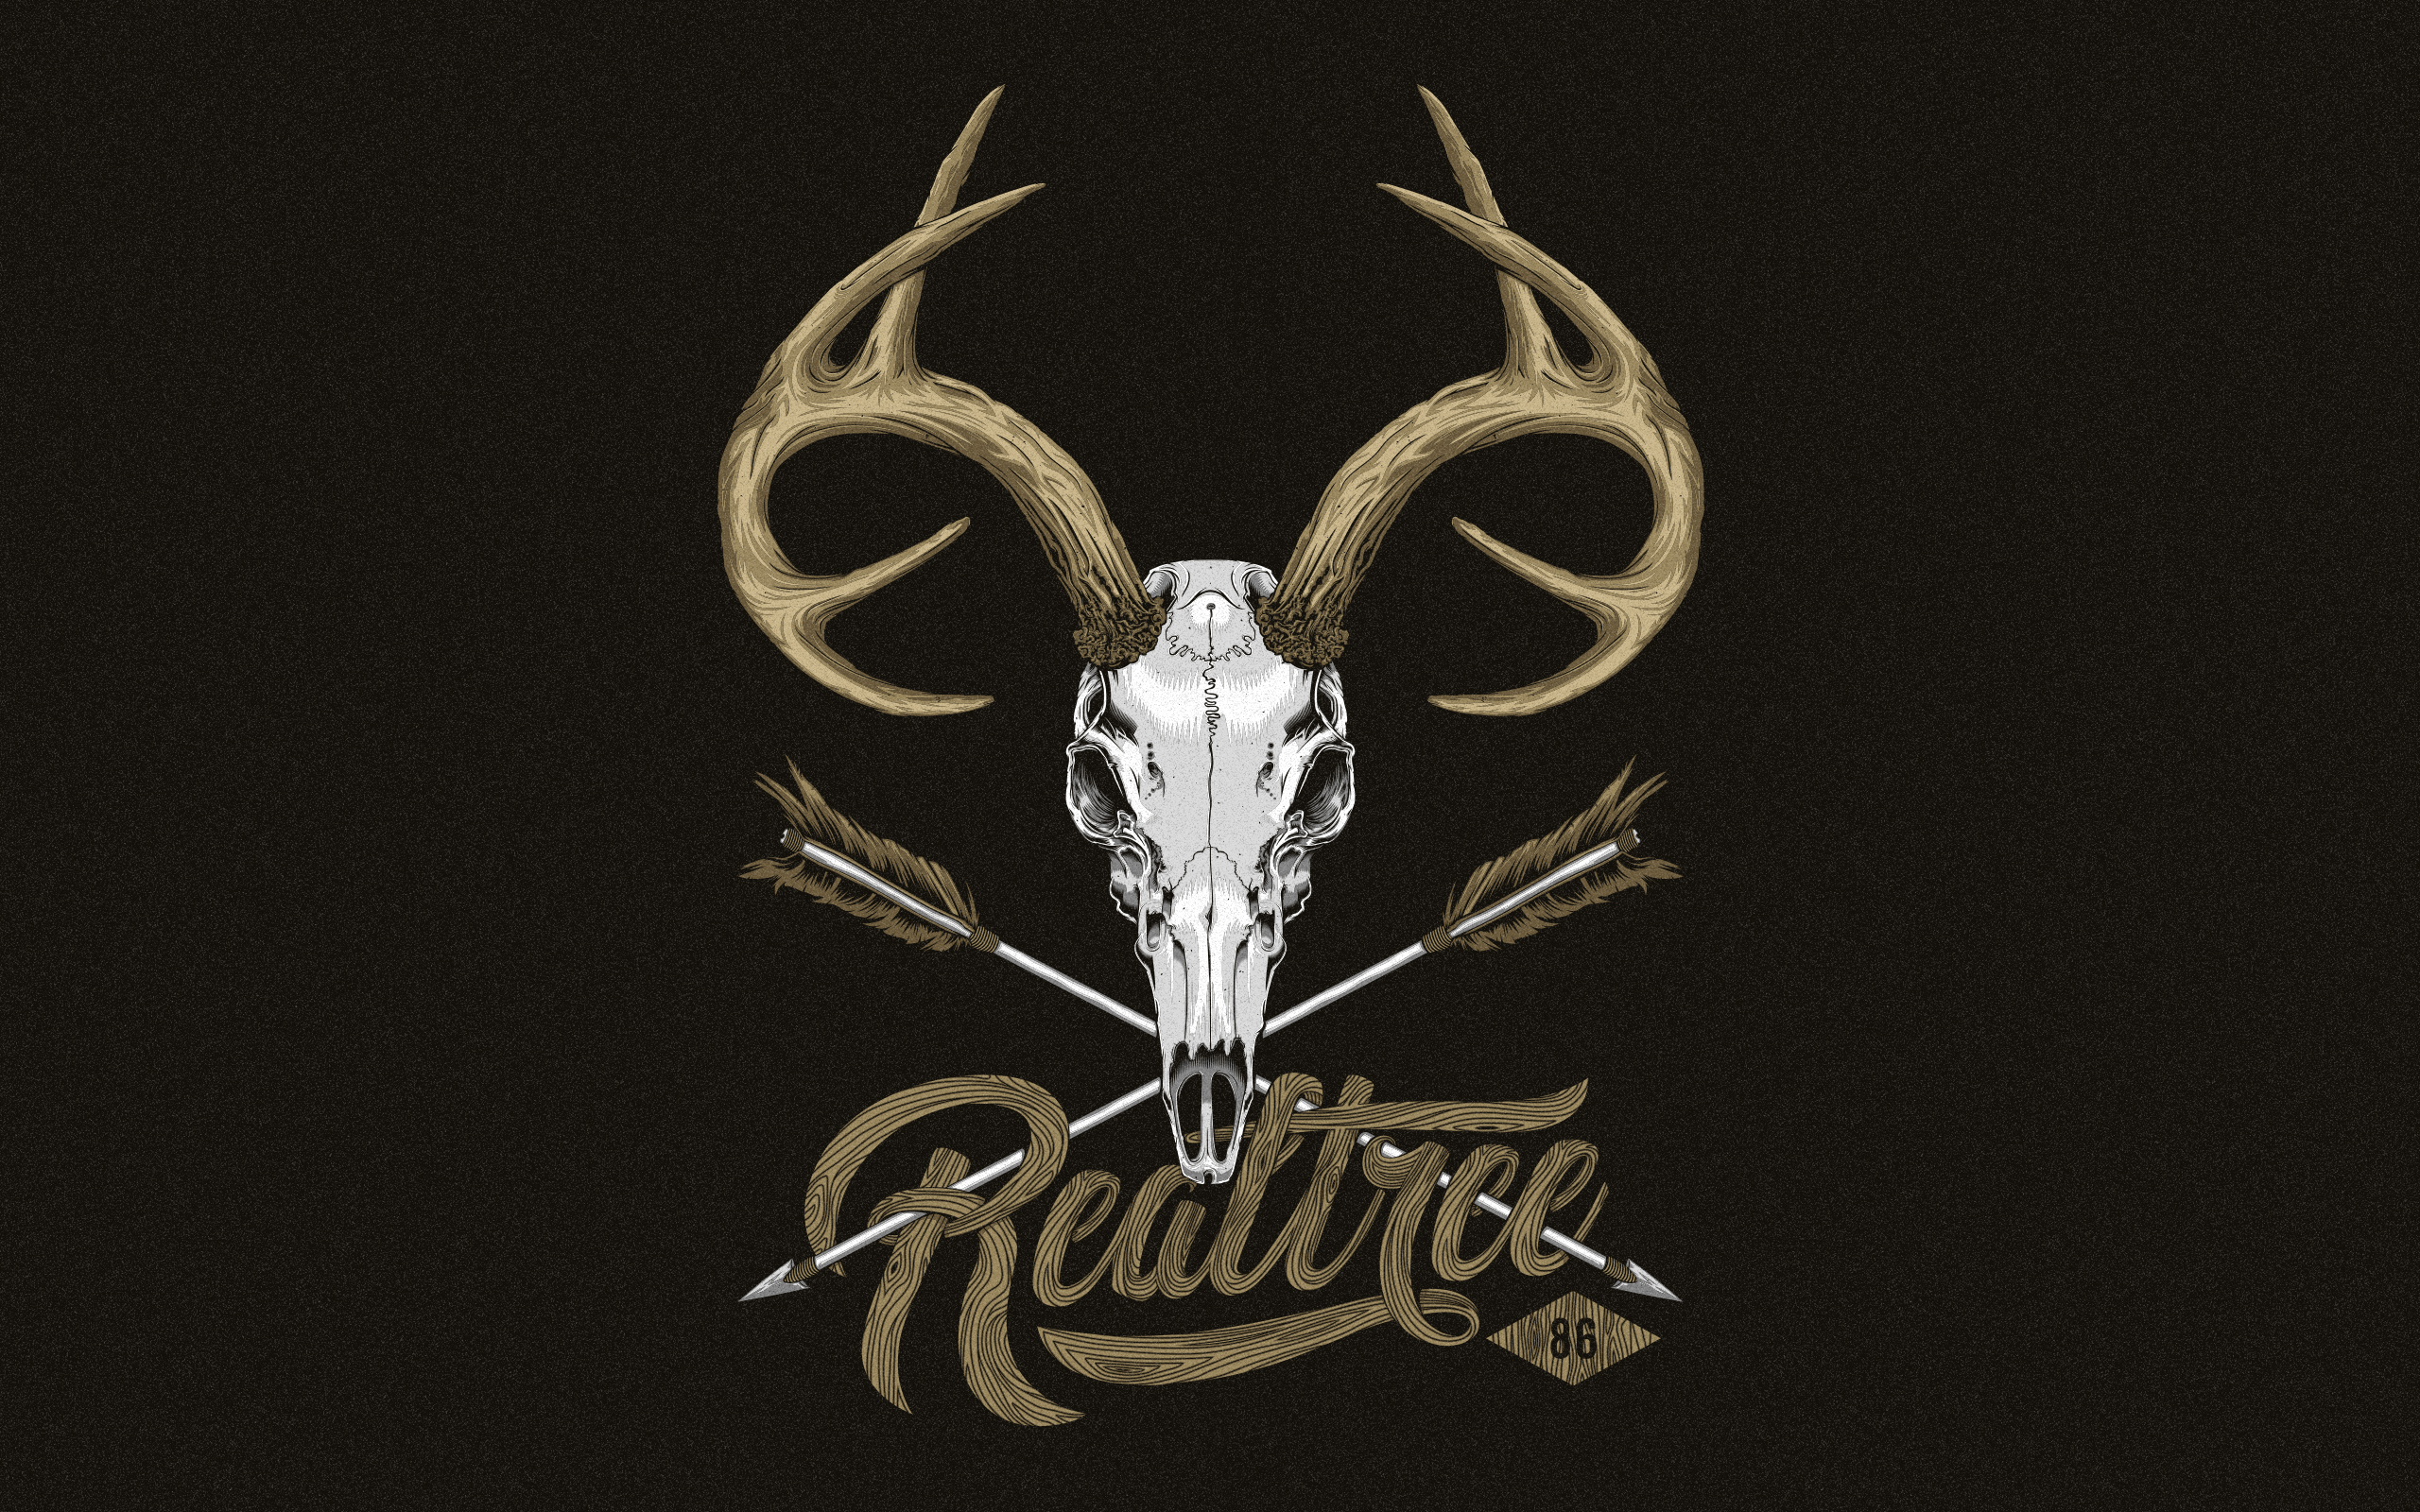 Wallpapers | Realtree